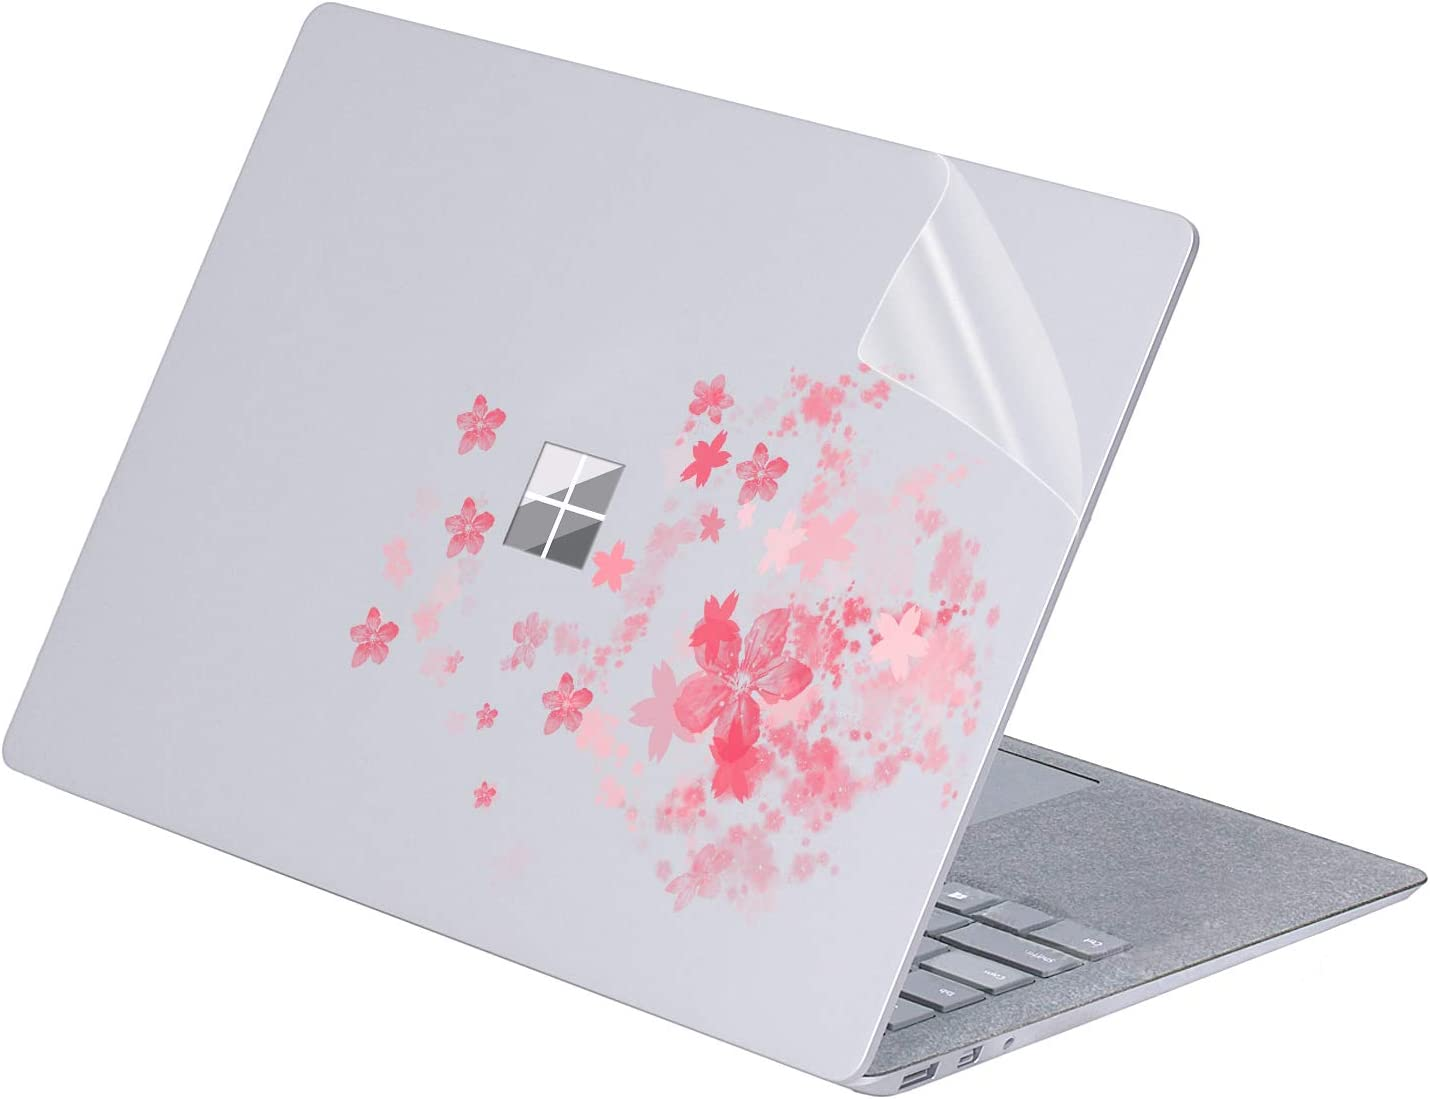 "MasiBloom Transparent Decal Sticker for 13 inch Microsoft Surface Laptop 3 & 2 & 1 (2019 18 17 Released) 13.5 inch Anti-Scratch Vinyl Protective Skin (for 13.5"" Surface Laptop 3/2/1, Cherry Blossom)"